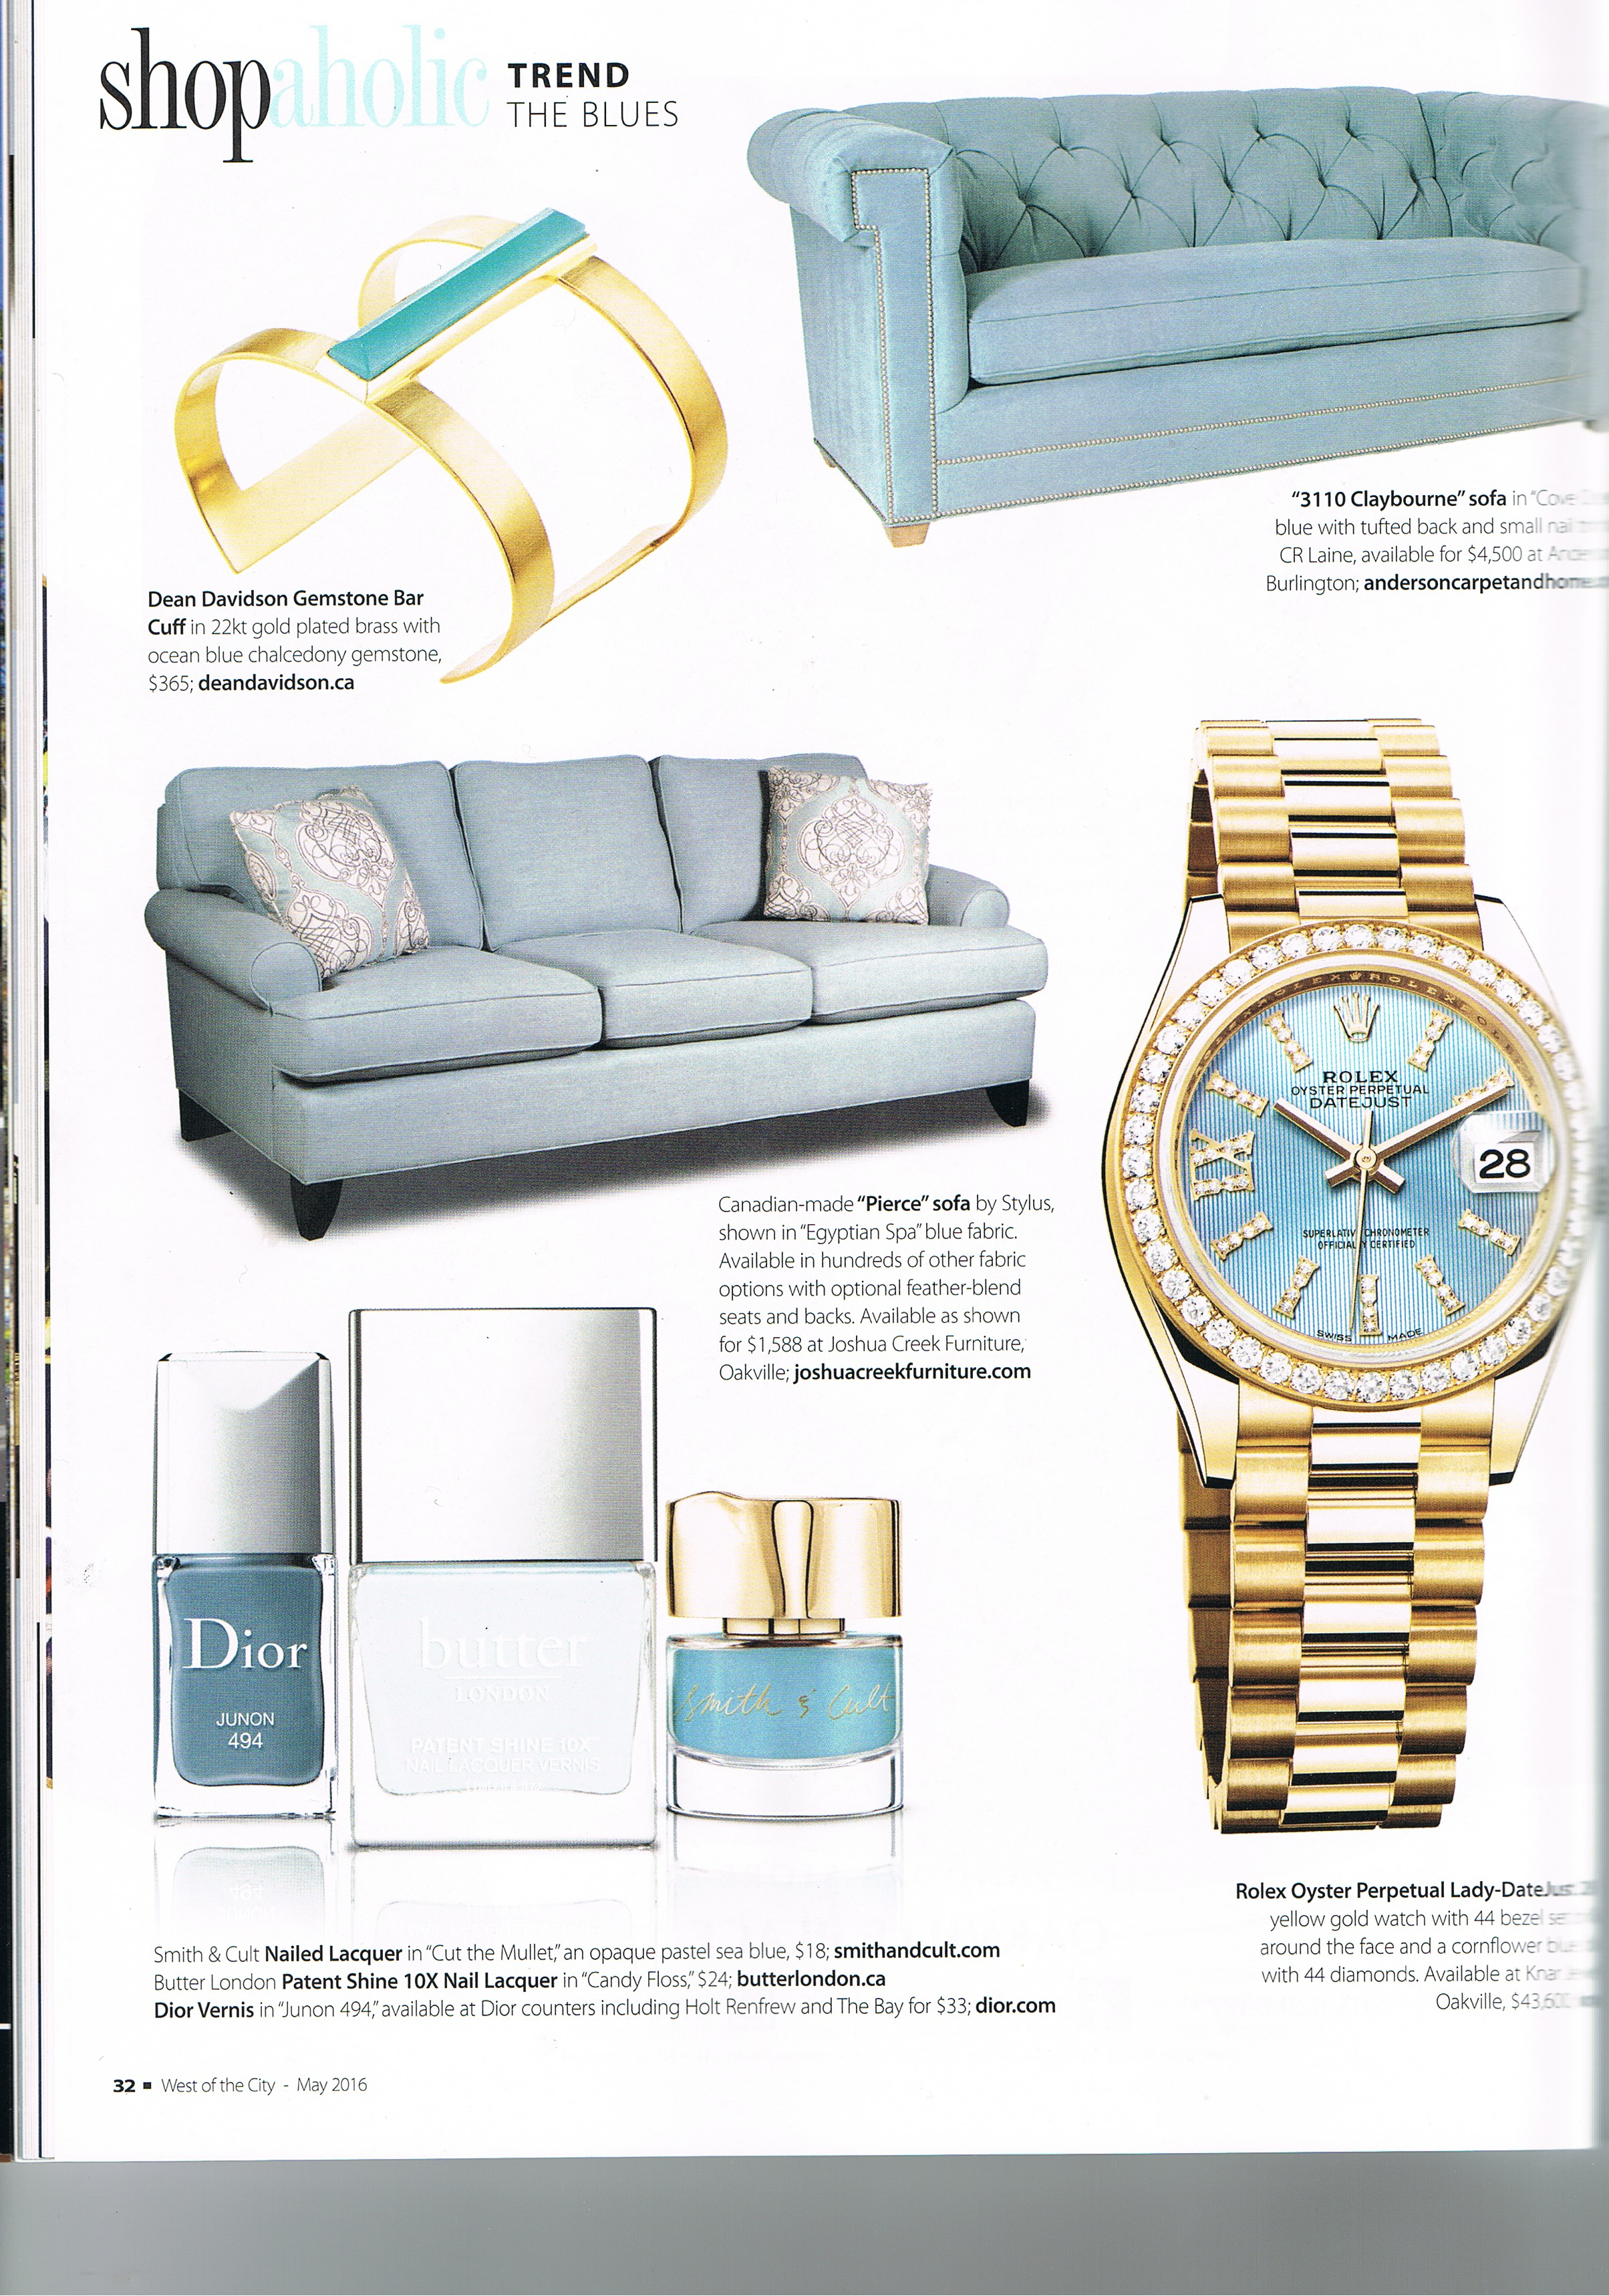 Dean Davidson Jewellery featured in West of the City Magazine